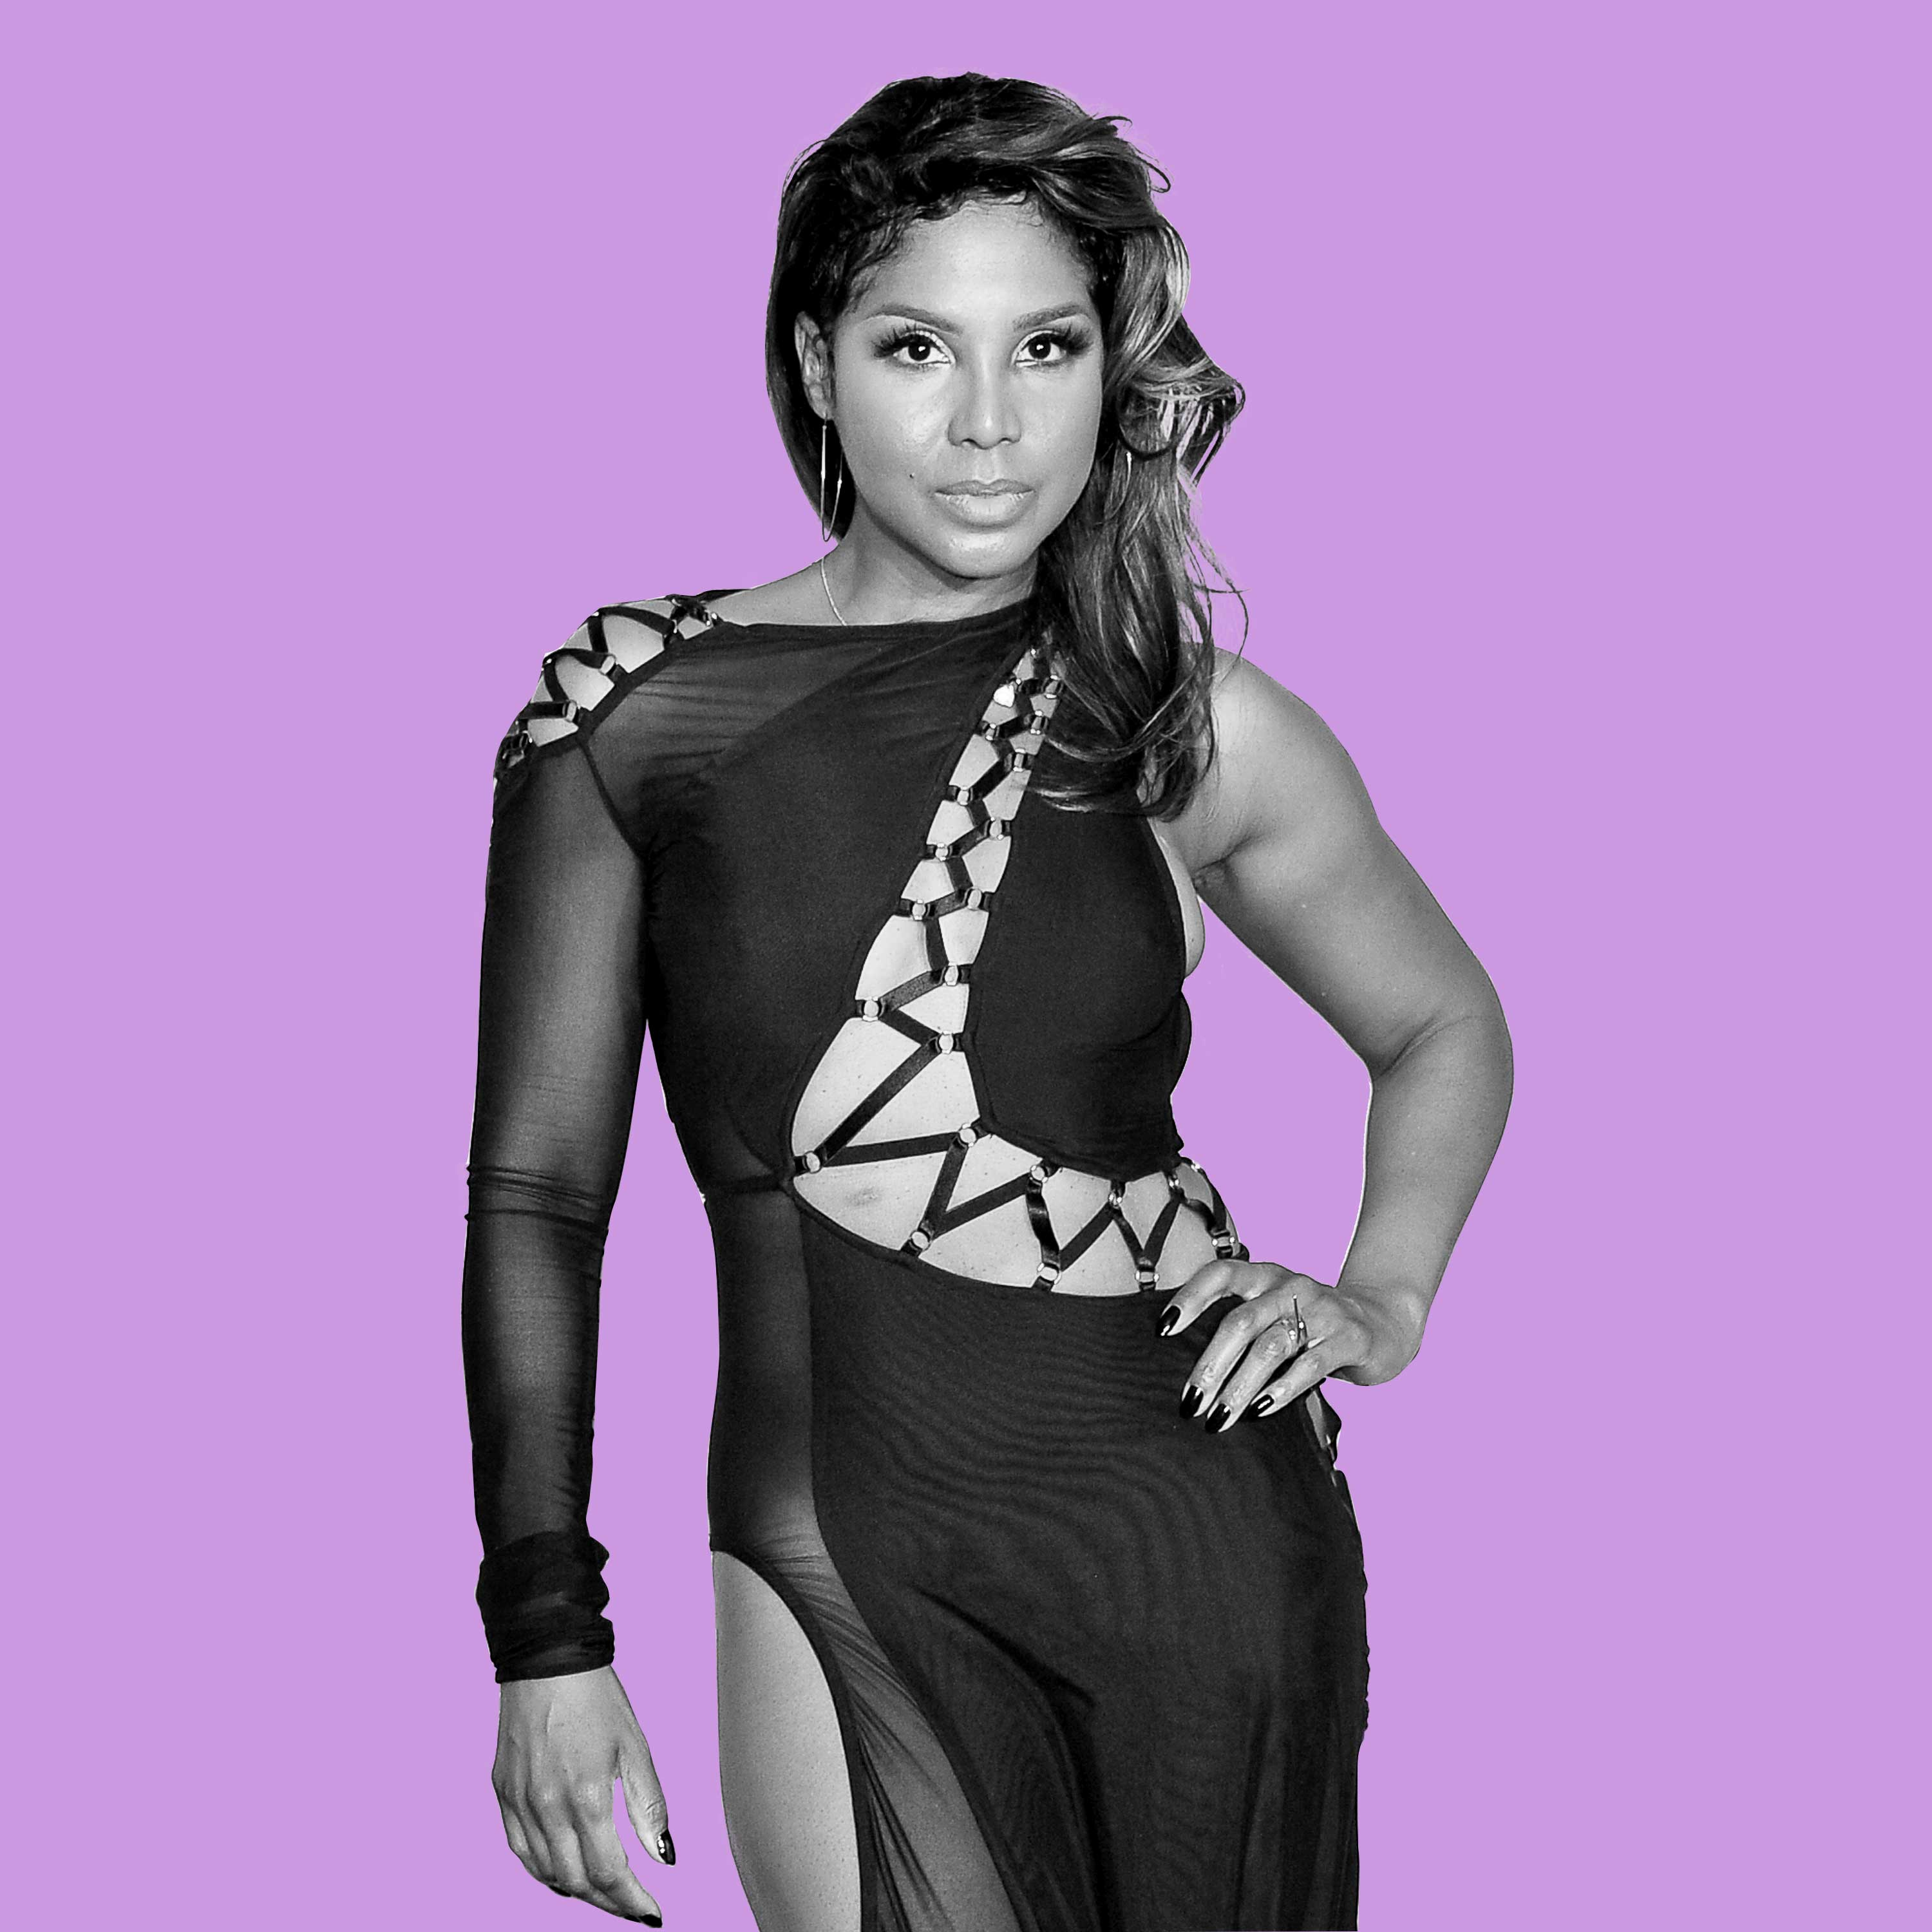 Braxton And Yancey Mid Century Modern Decor: Toni Braxton And SWV Are Going On Tour Next Year